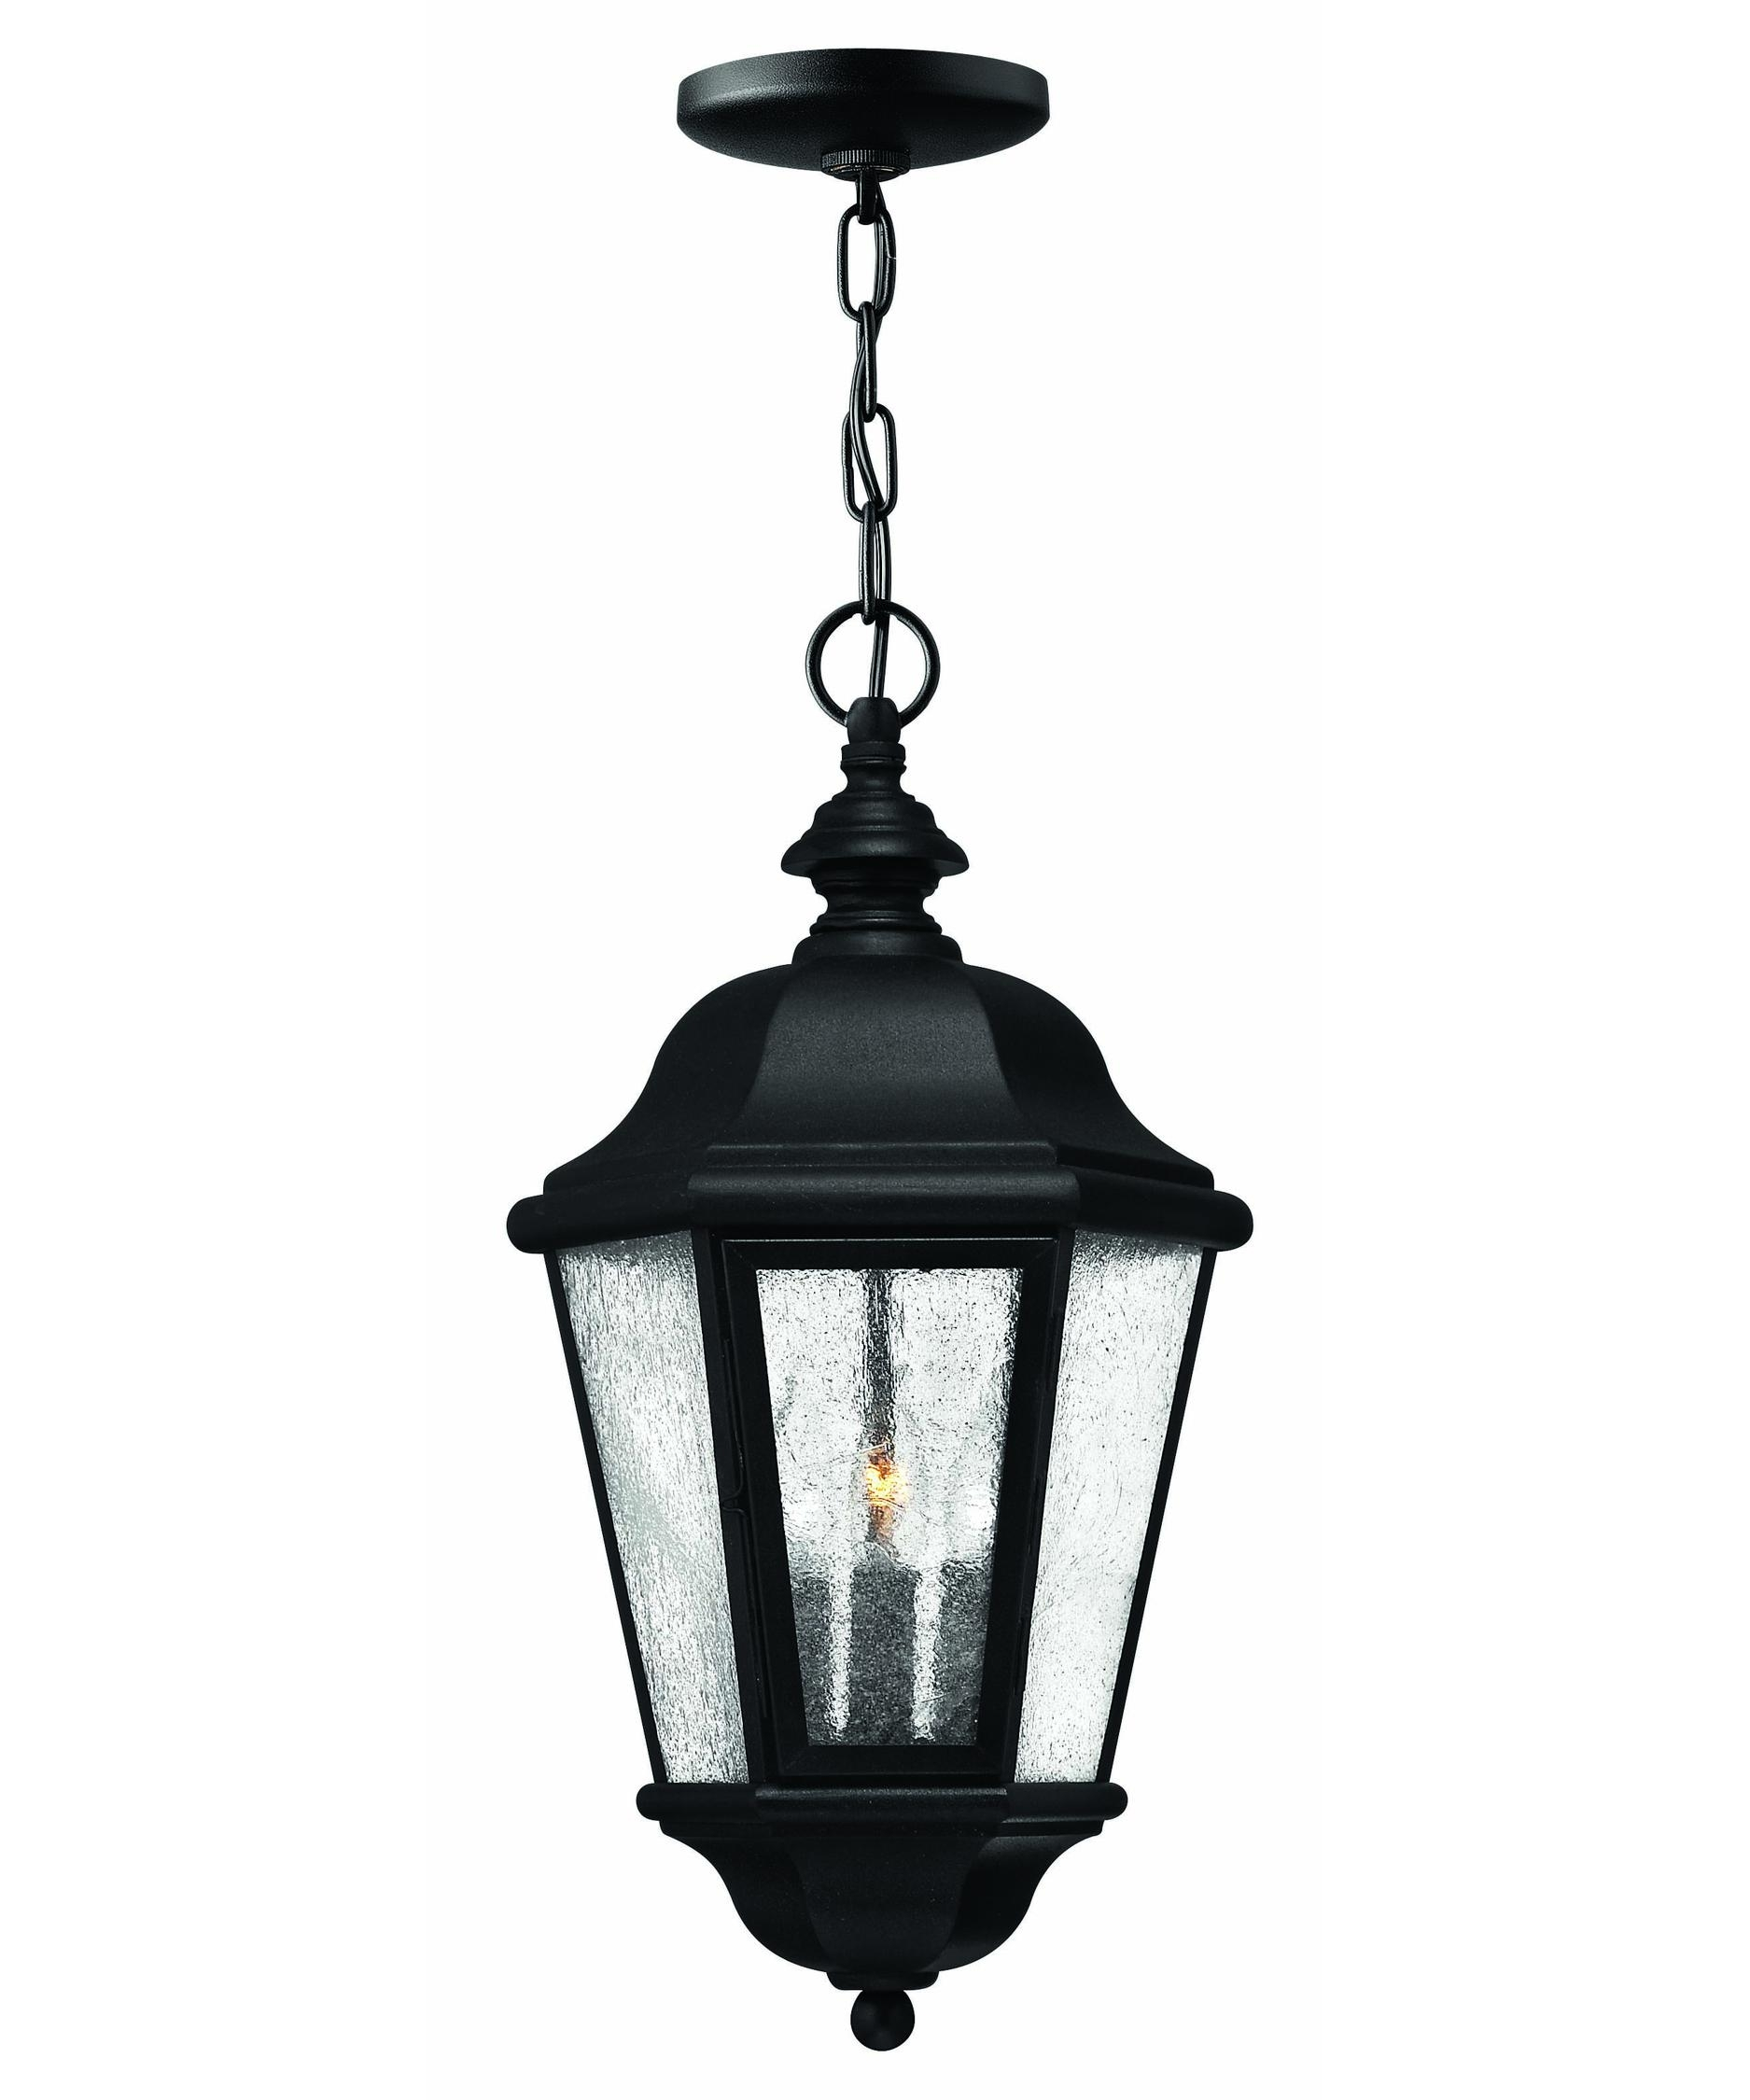 Hinkley Lighting 1672 Edgewater 10 Inch Wide 3 Light Outdoor Hanging Within Outdoor Hanging Lights At Amazon (View 1 of 15)